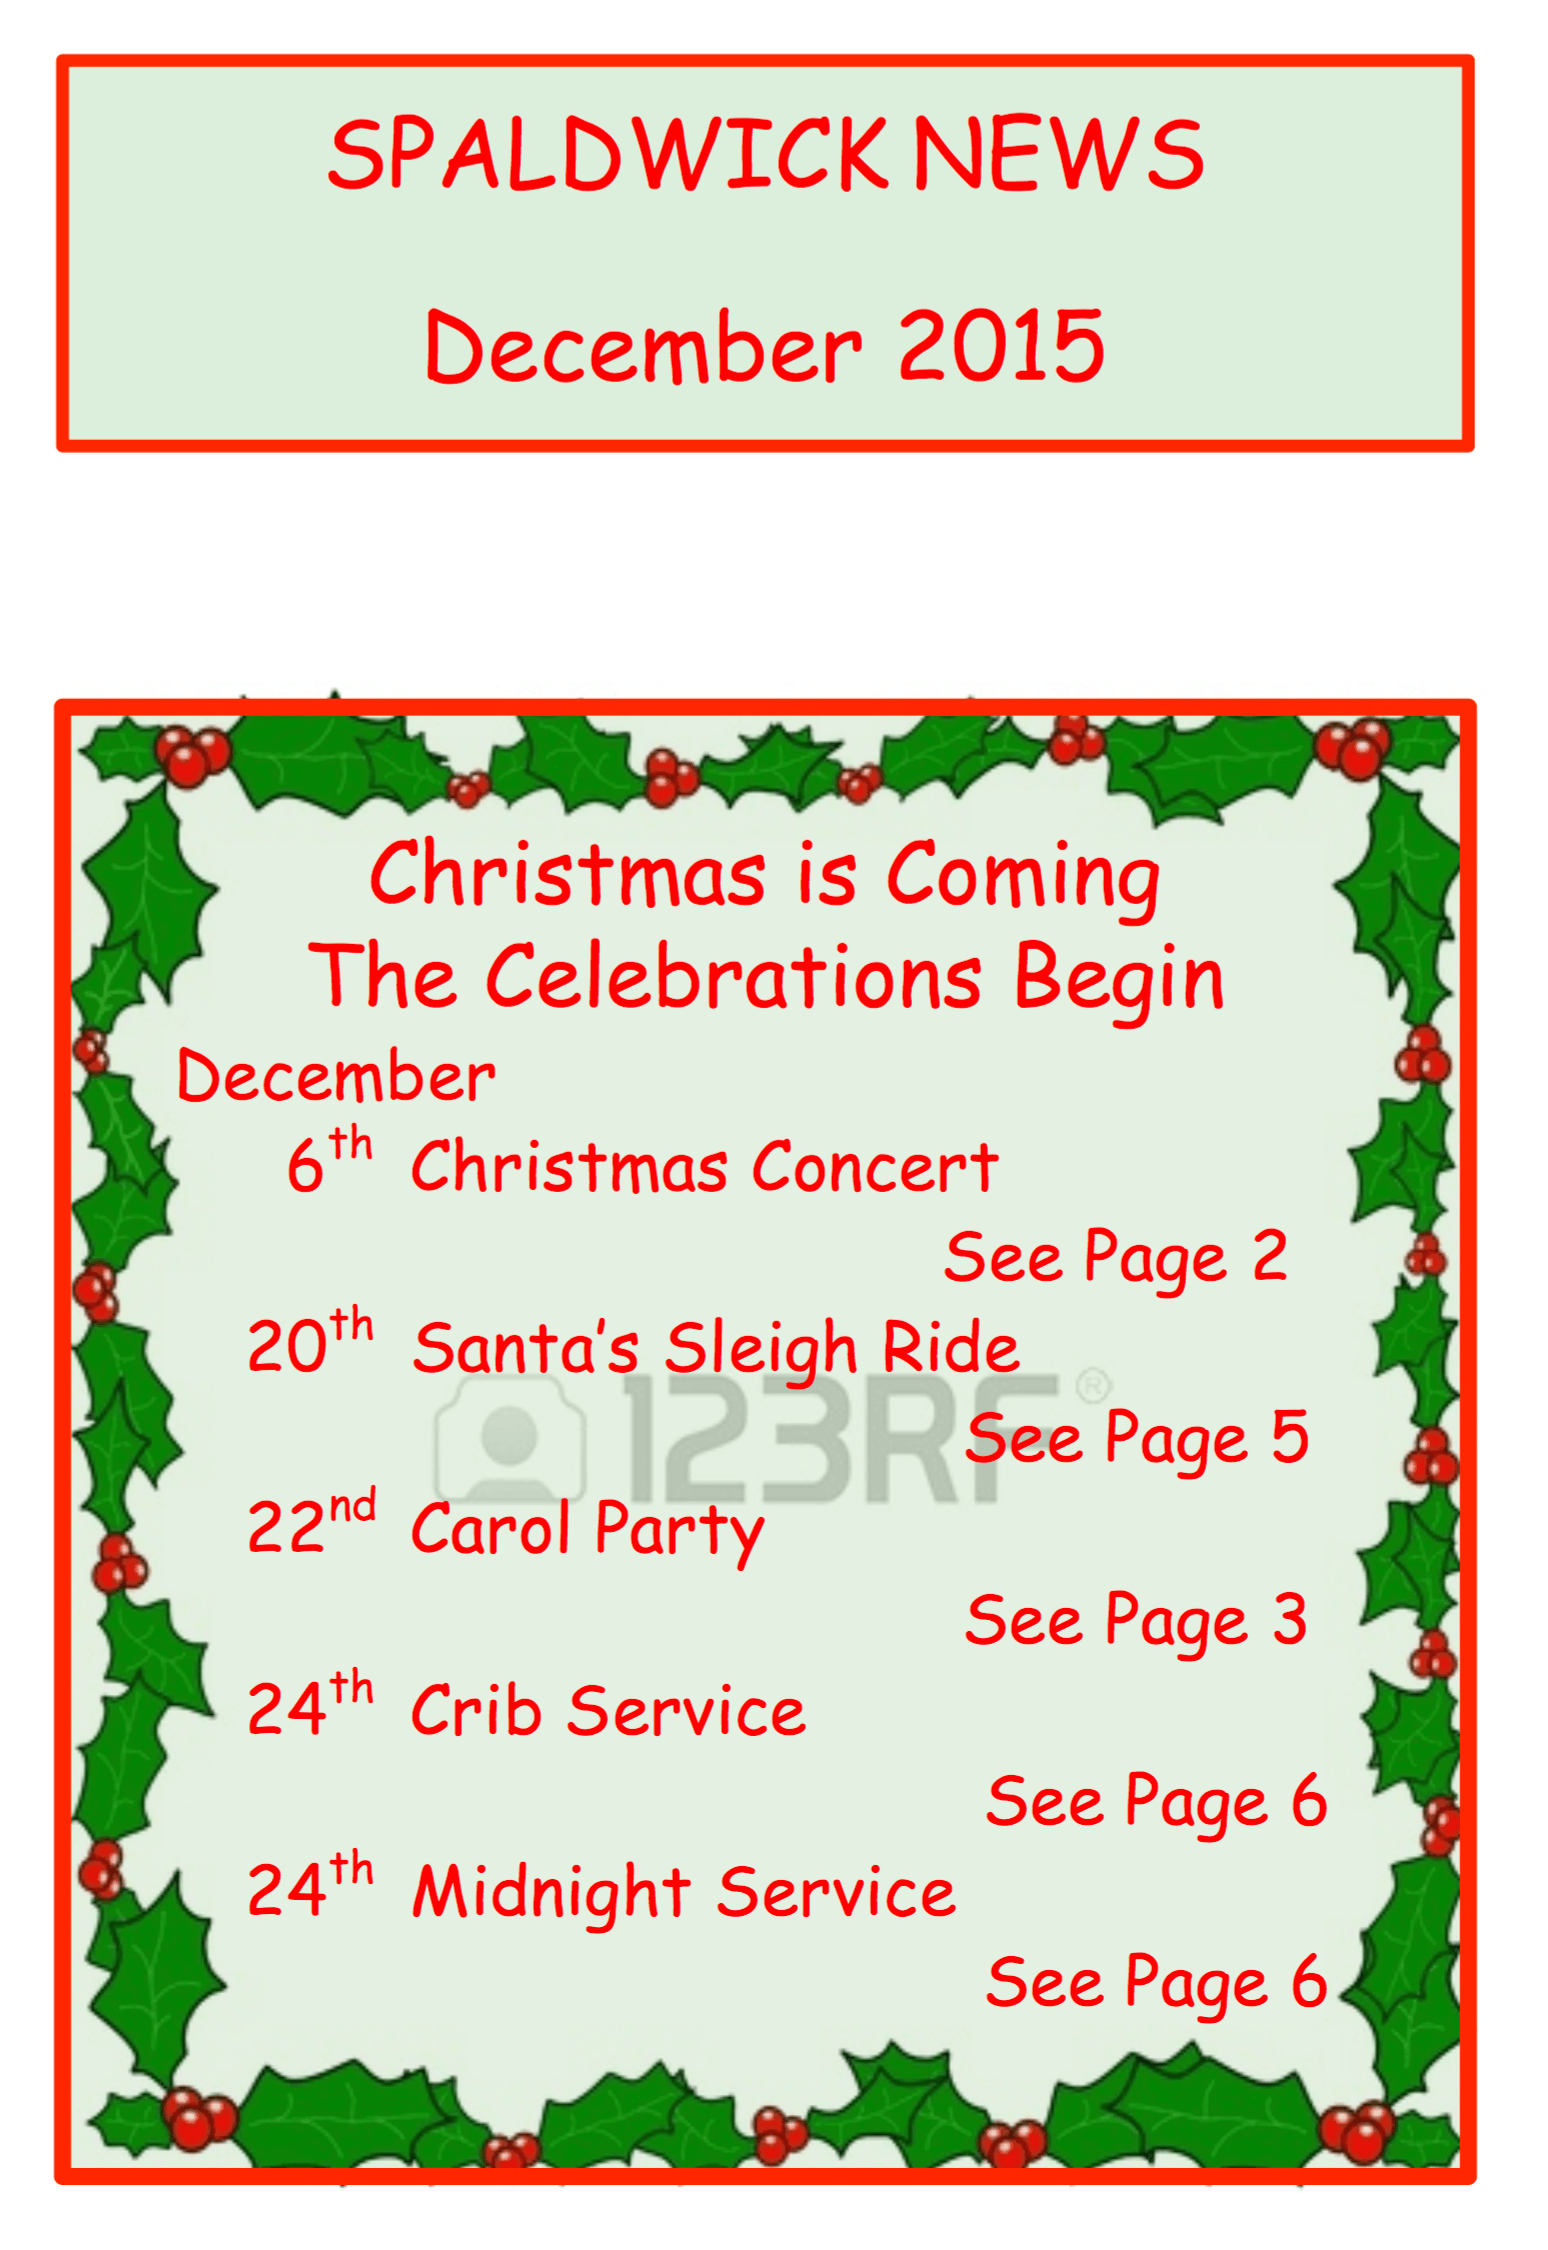 Christmas events in Spaldwick